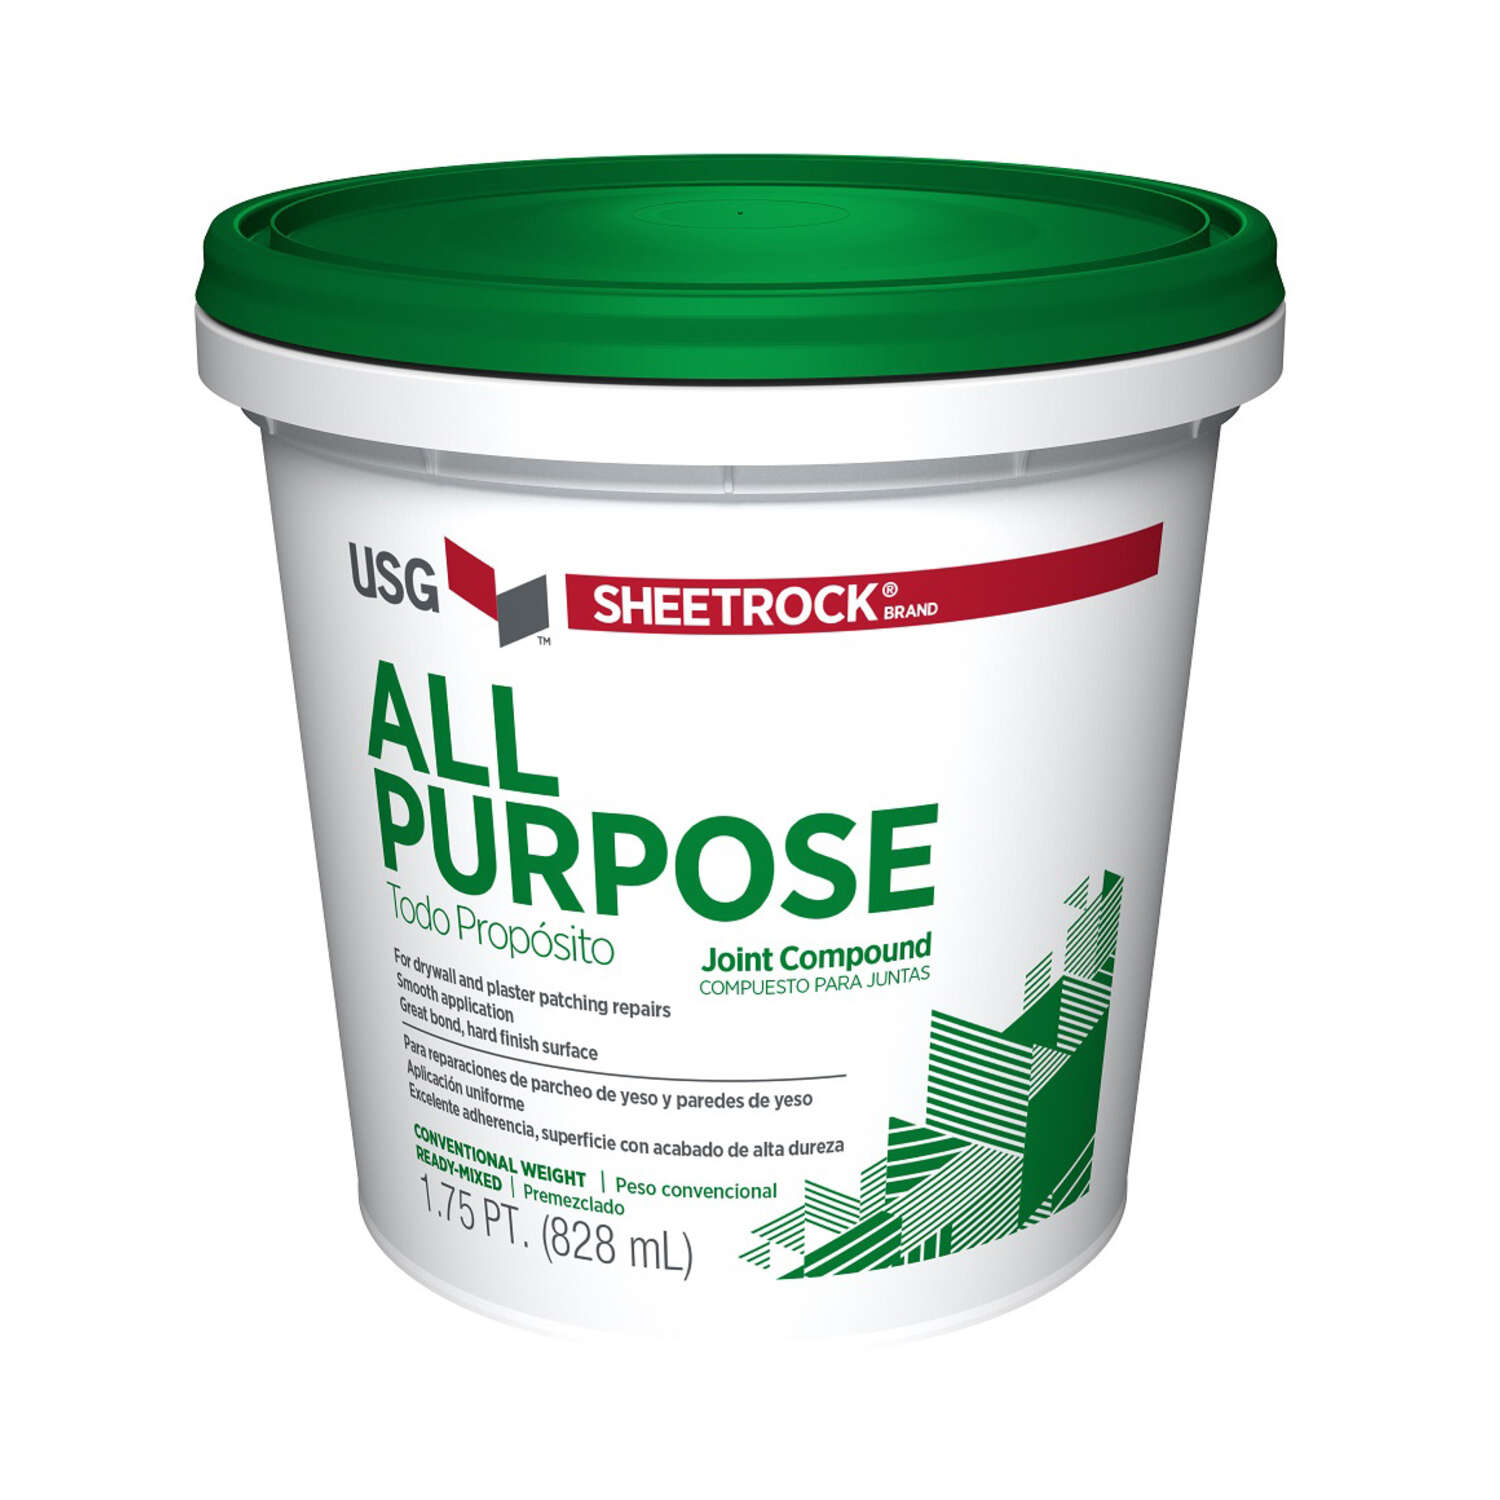 Sheetrock White All Purpose Joint Compound 1.75 pt.